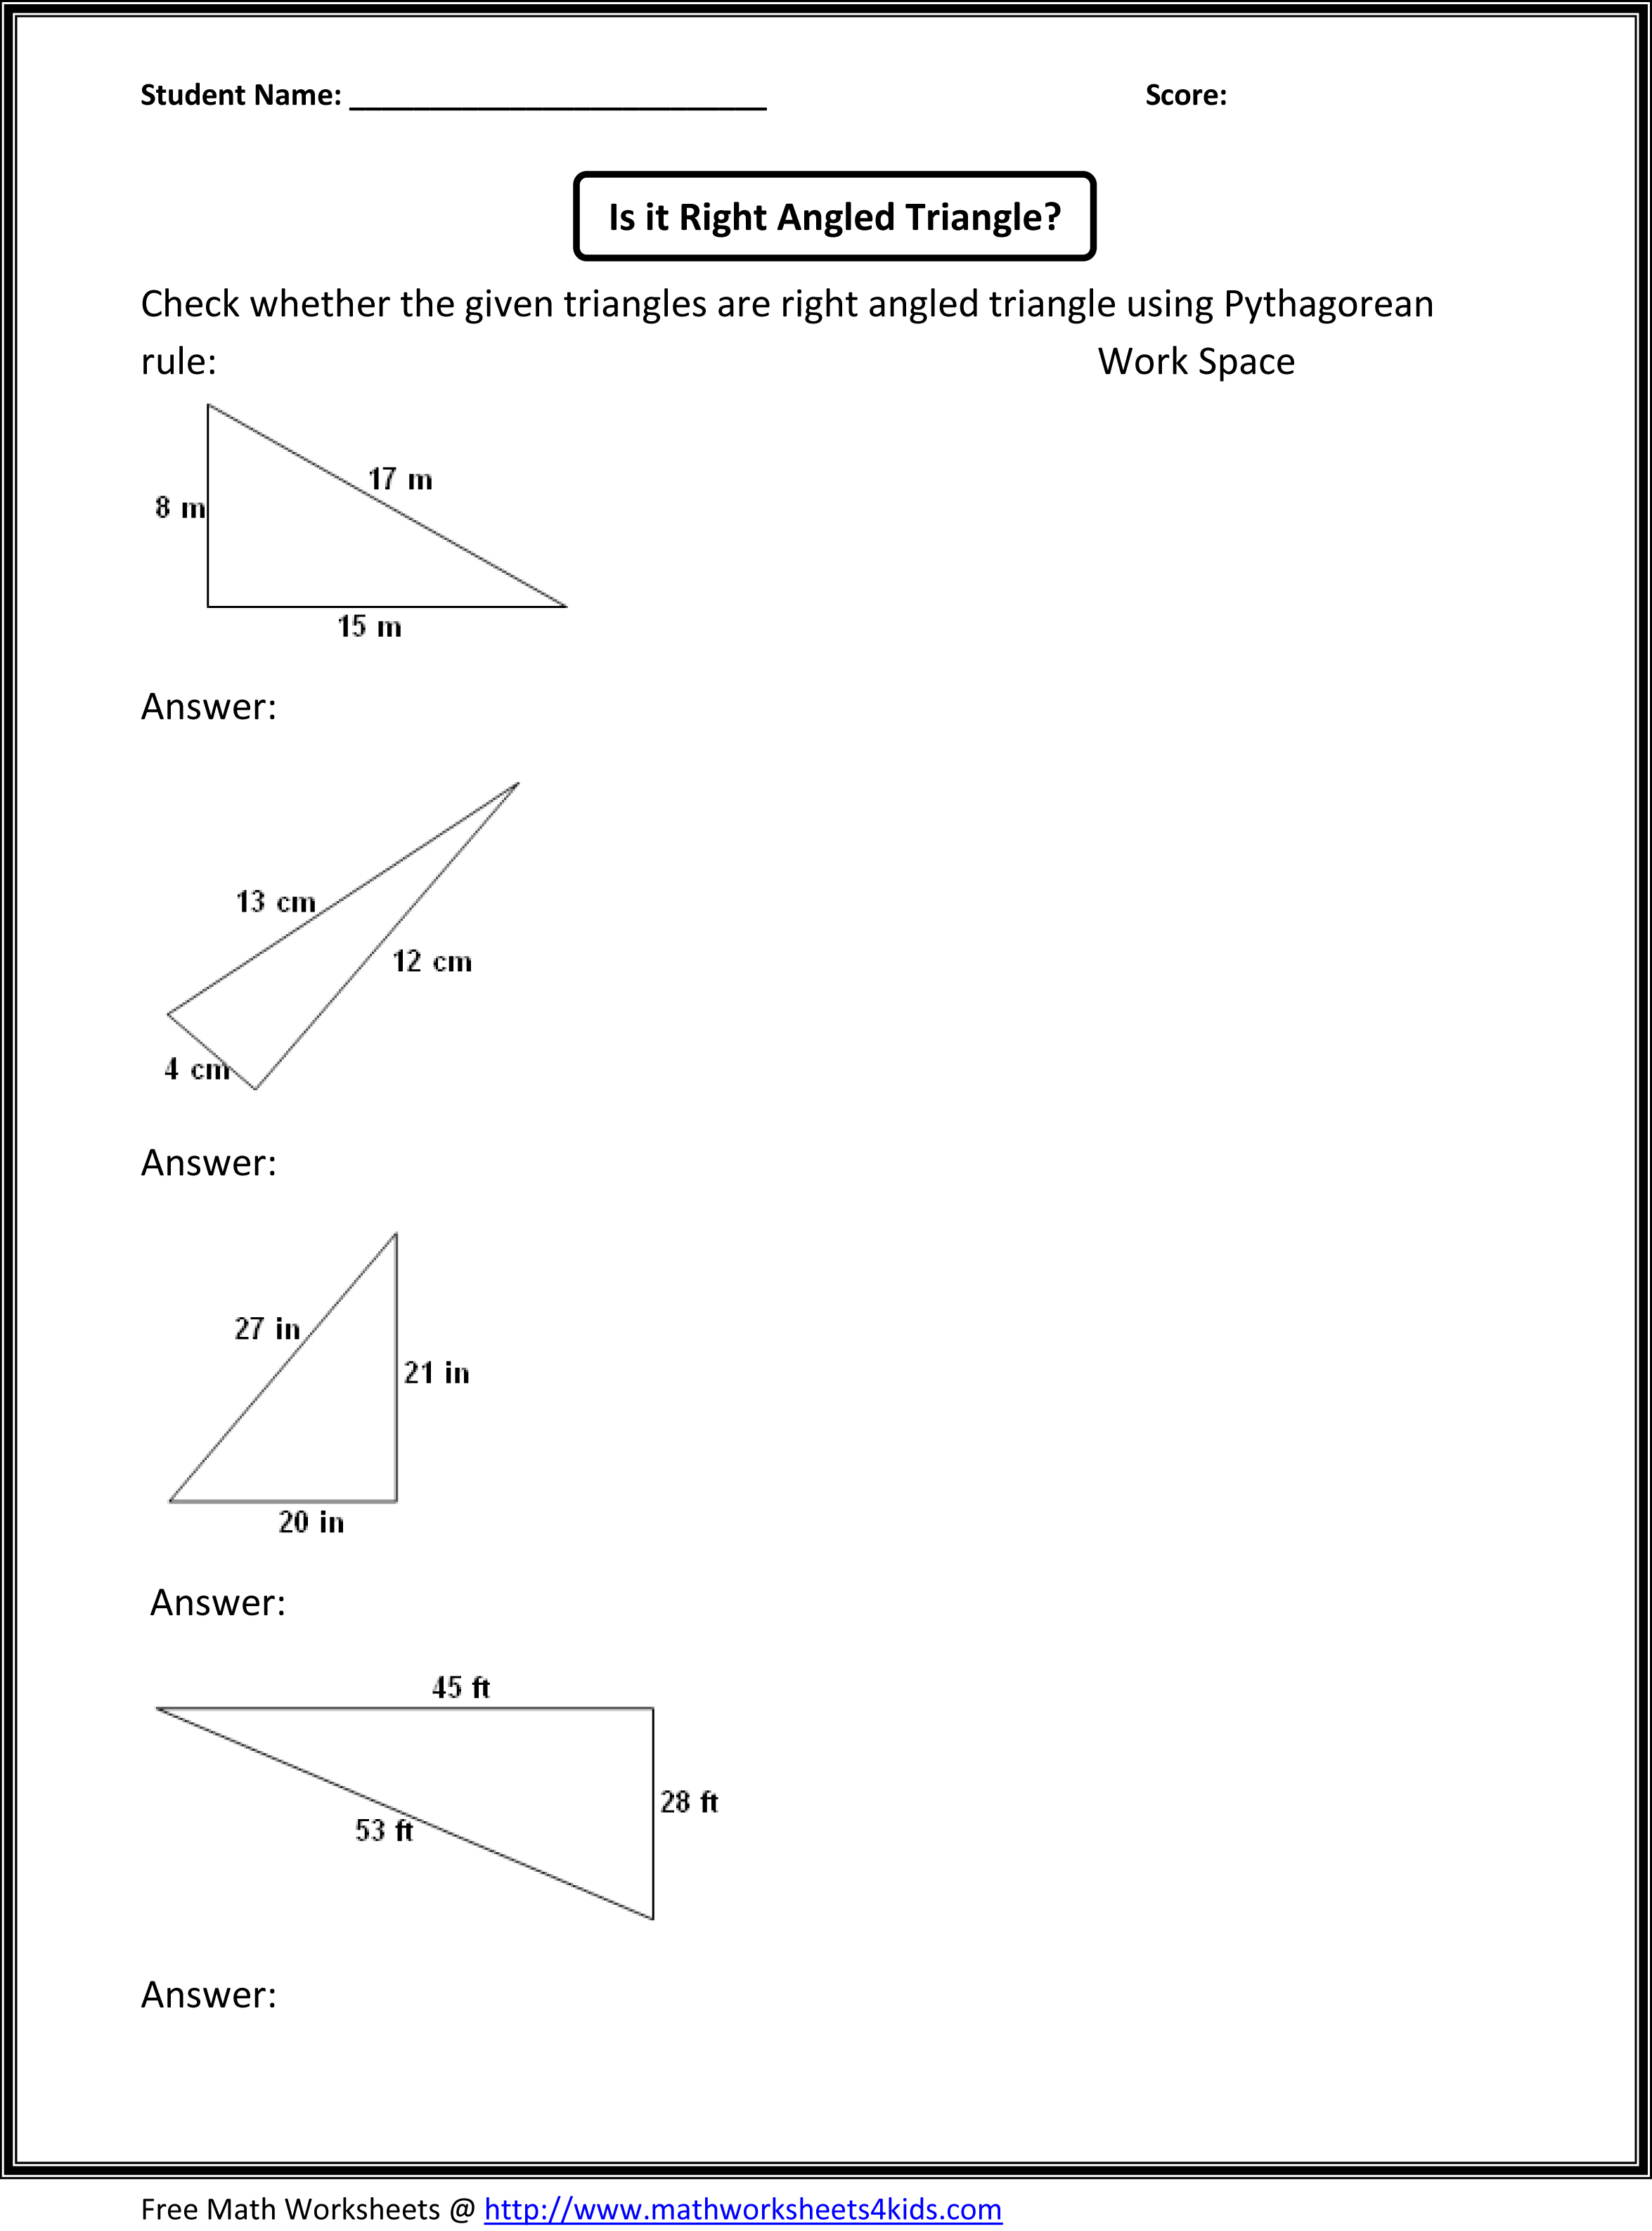 Advanced Math Worksheets First Grade Or 2nd Grade Math Worksheets – Free Math Worksheets 4 Kids